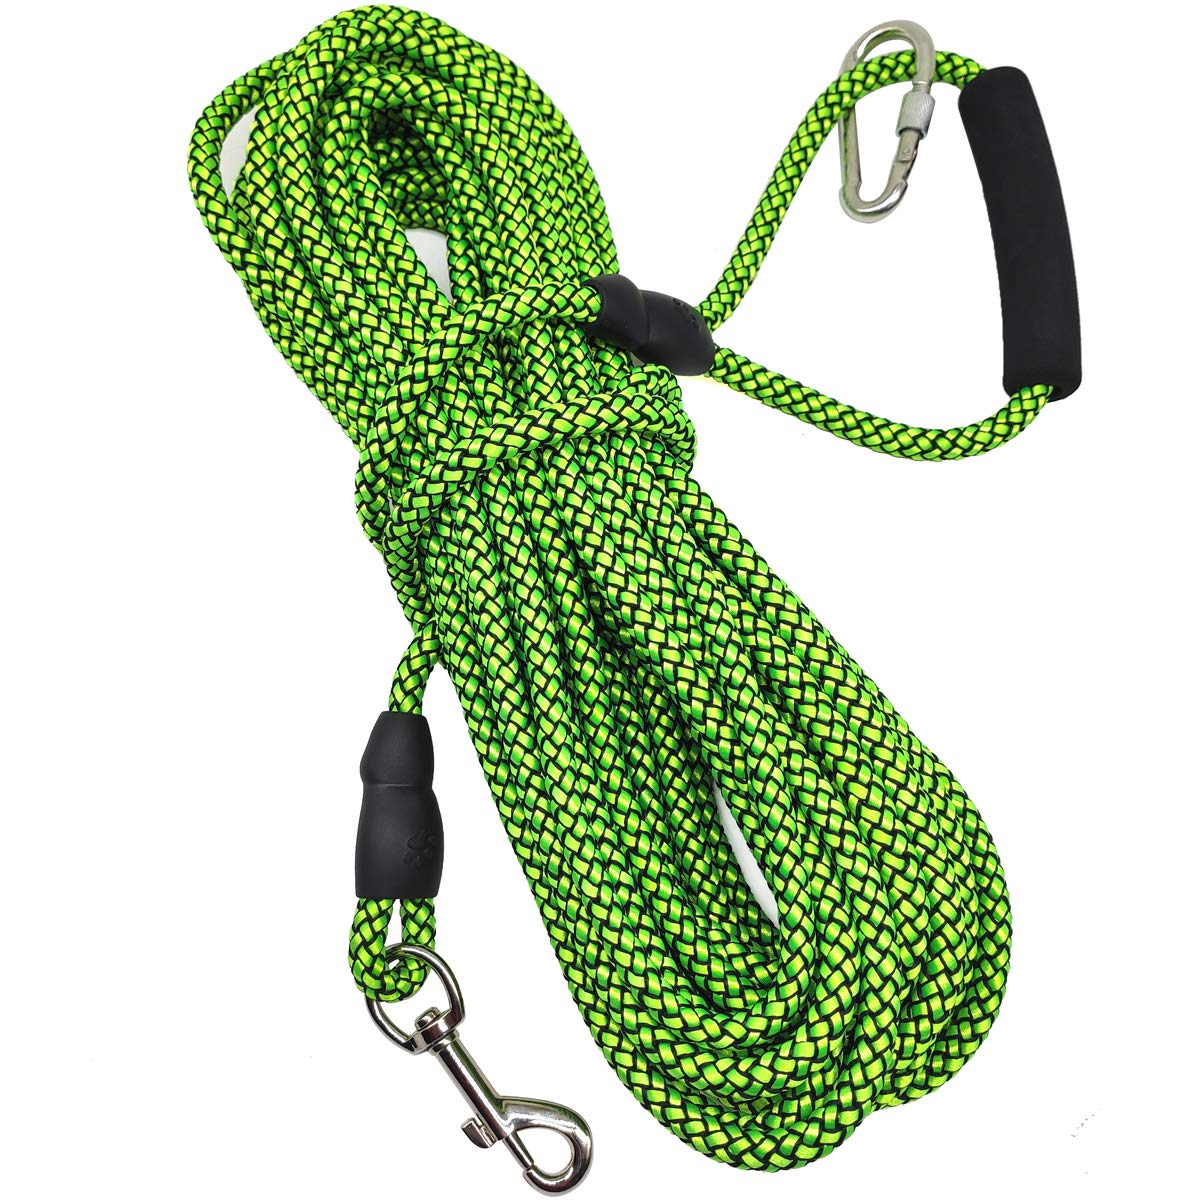 Mycicy 10ft 15ft 30ft Long Line Training Rope Leash, Soft Handle Heavy Duty Nylon Recall Lead for Small Medium Large Dogs